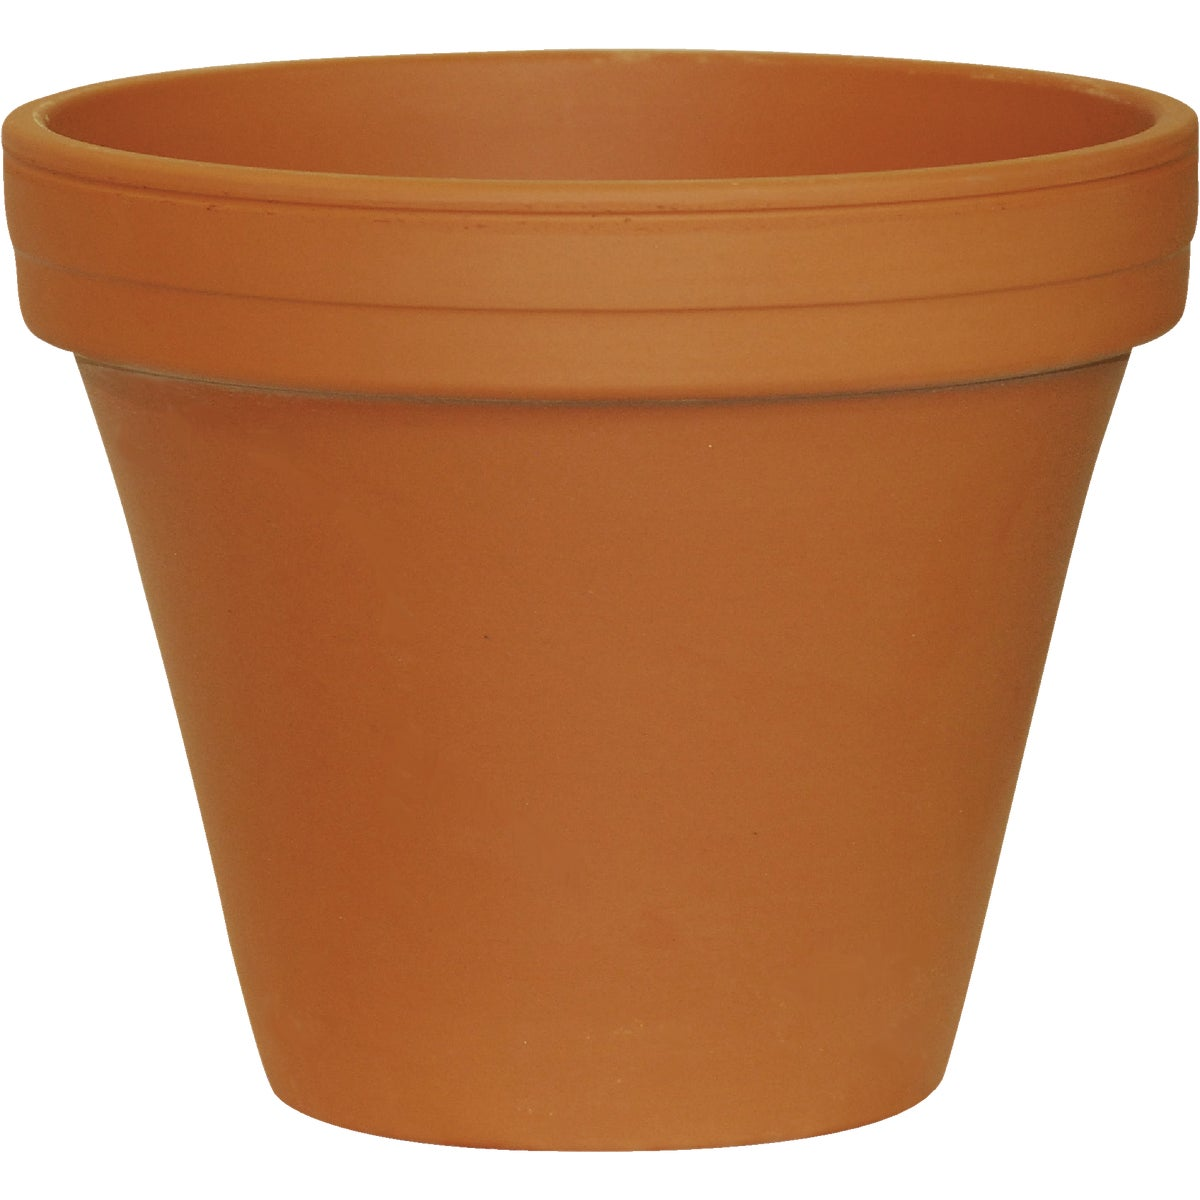 "8.25""TERA COTTA CLAY POT - M8300PZ by Deroma"